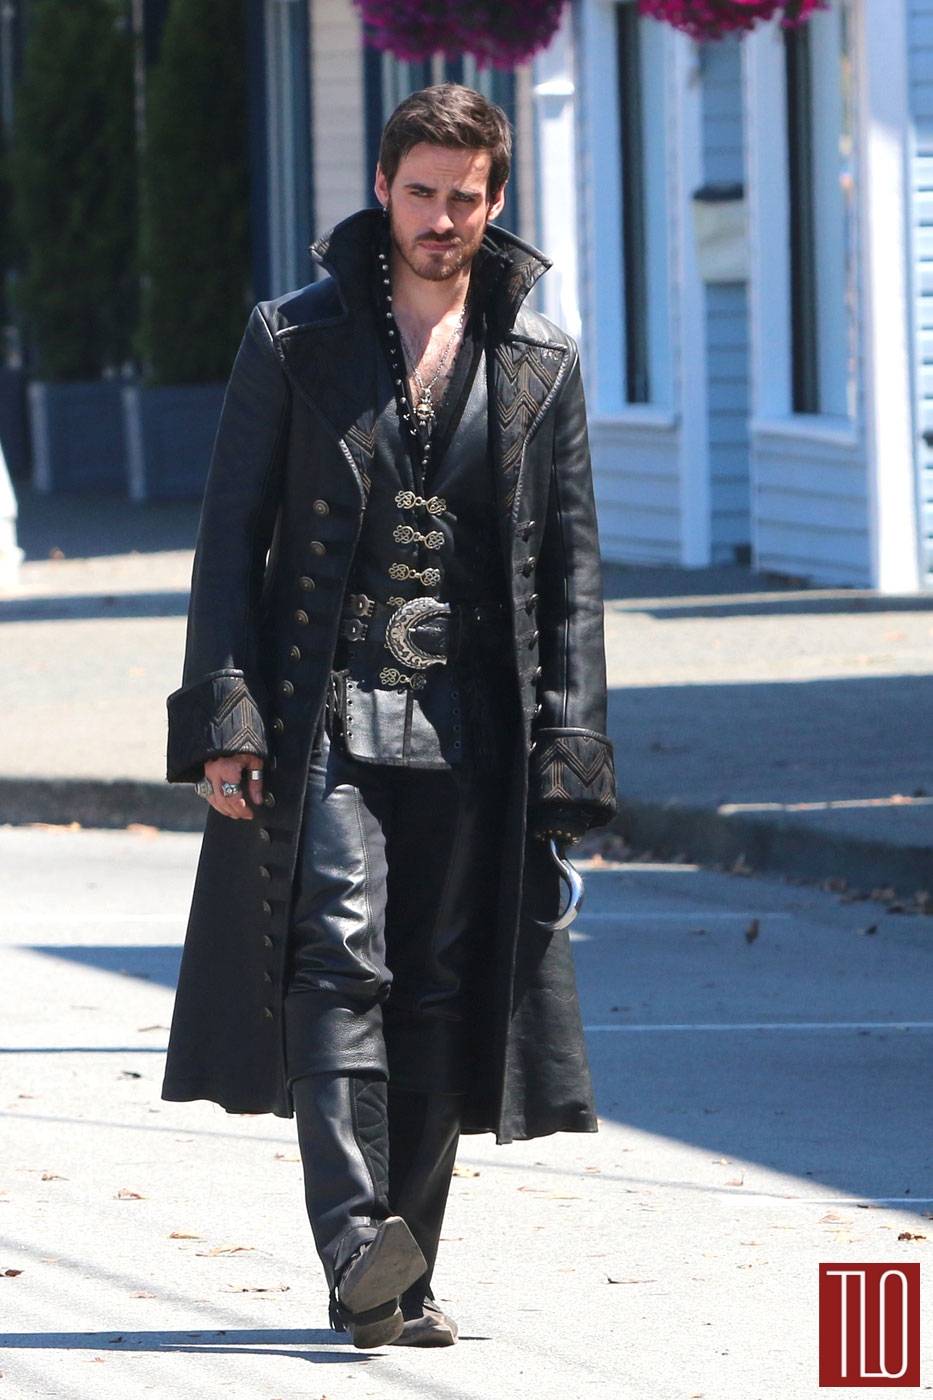 Colin-ODonoghue-Once-Upon-A-Time-Set-TV-Show-Costumes-Tom-Lorenzo-Site-TLO (1)